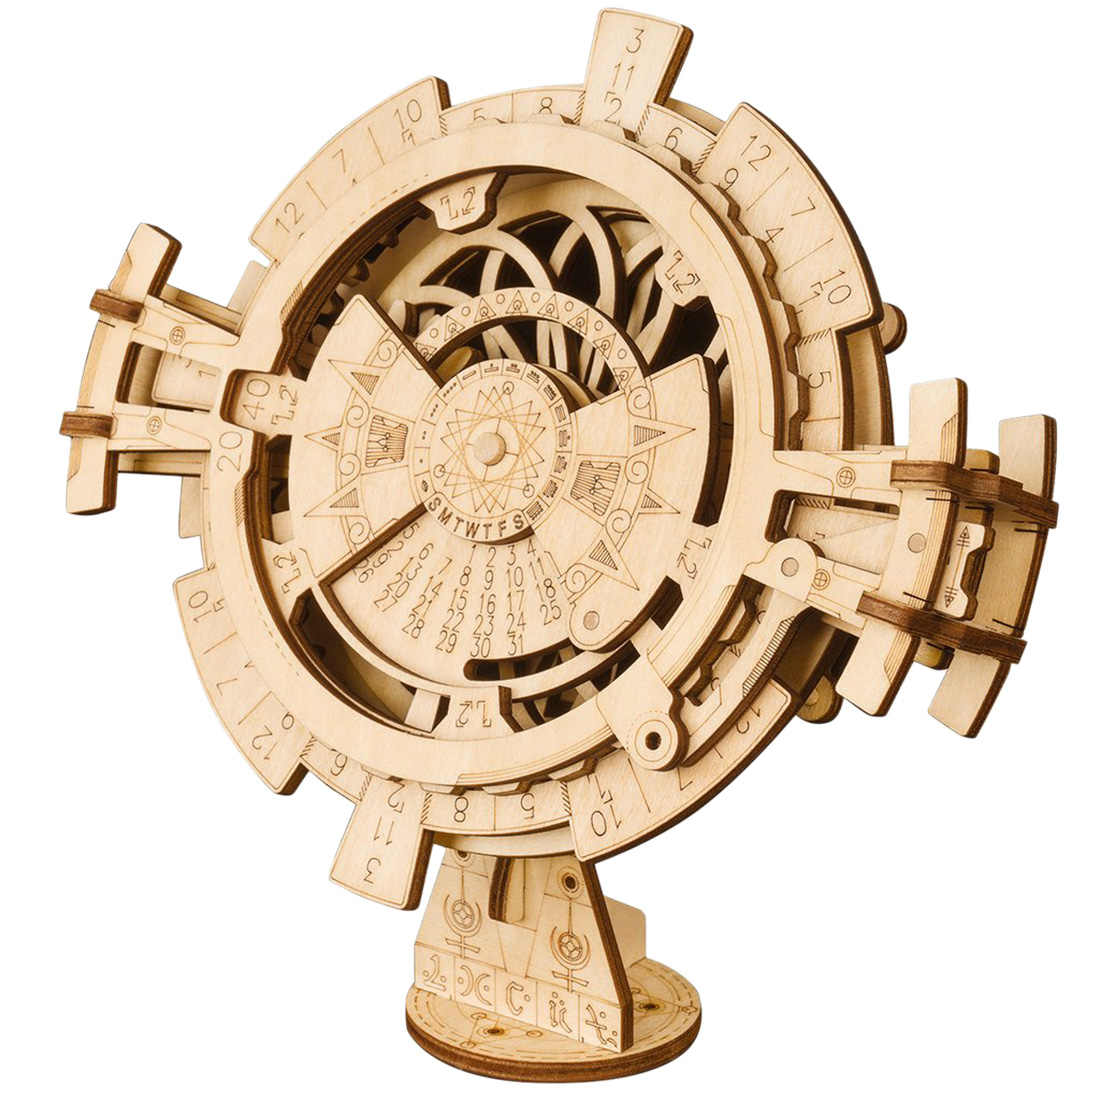 3D Wooden Puzzle Model Building Kits Perpetual Calendar Stem Toy Wooden Model Building Kits  For Kids Adults